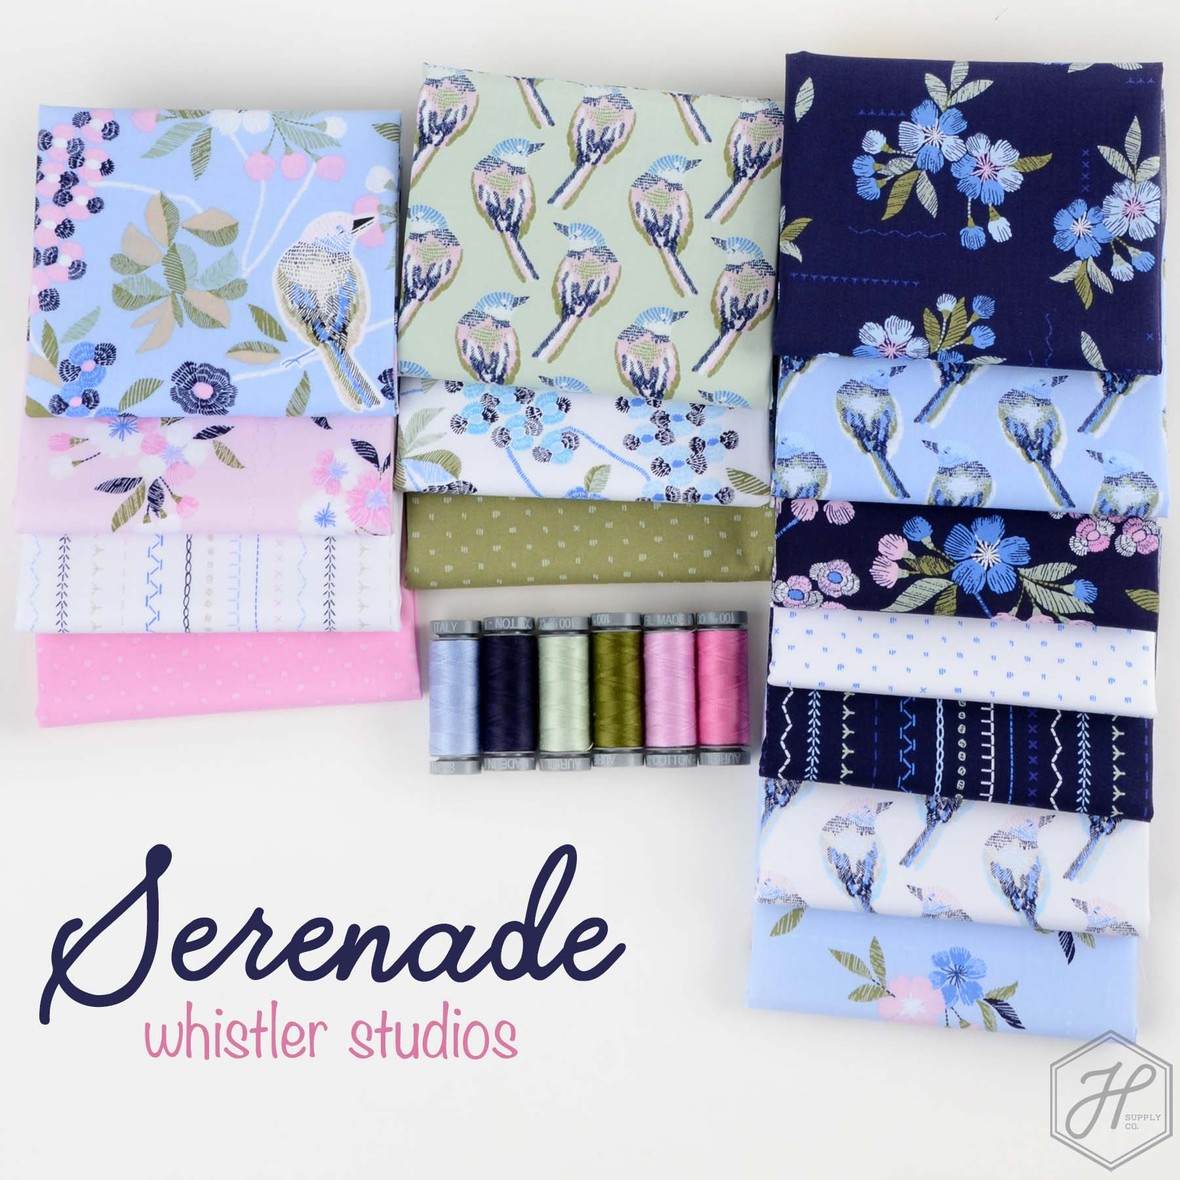 Serenade Fabric poster windham at Hawthorne Supply Co